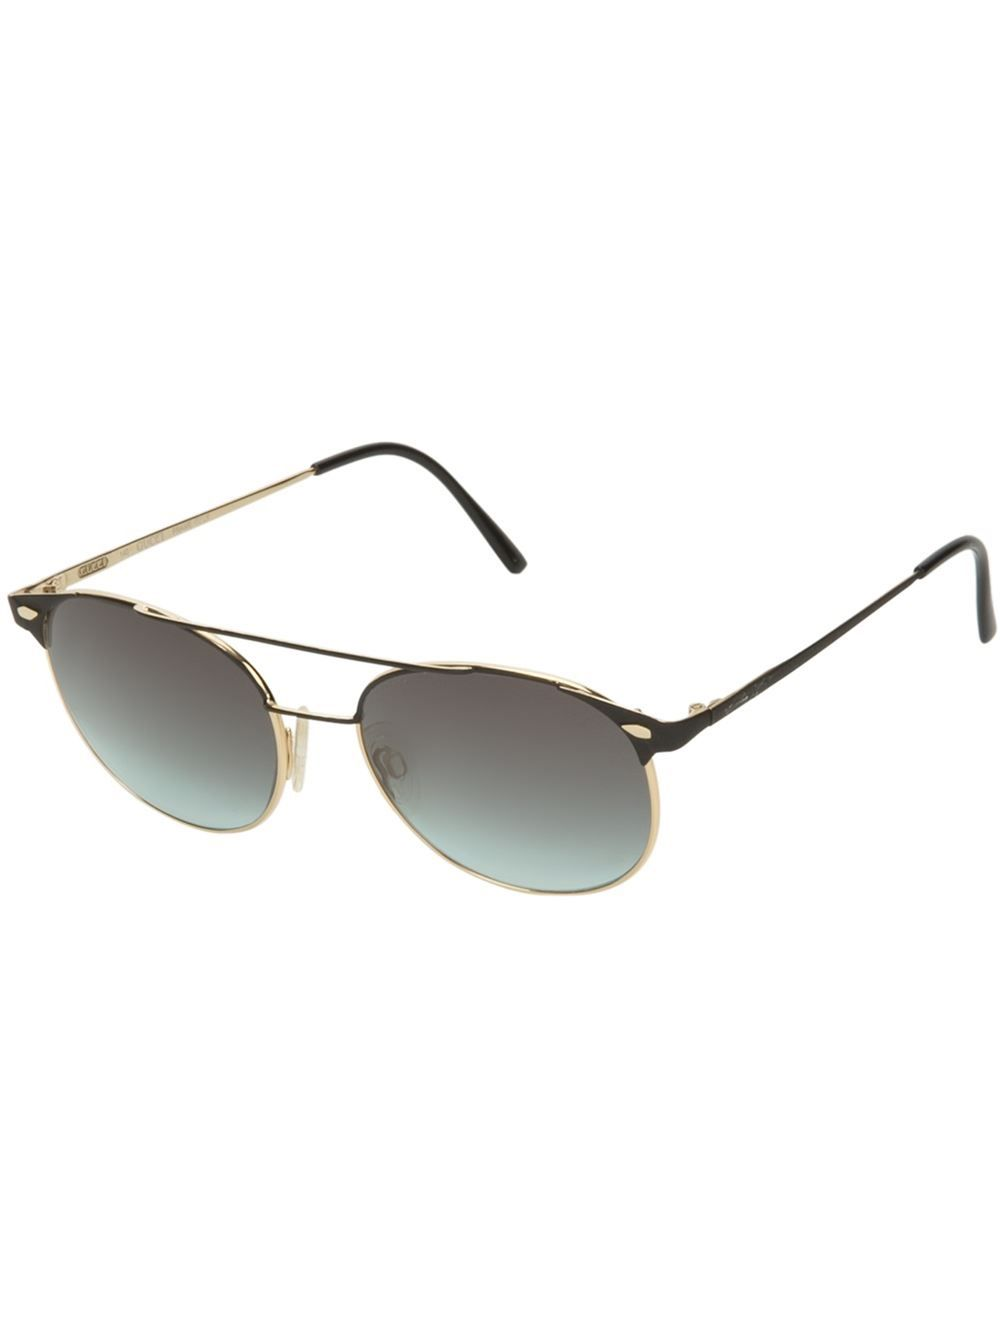 6dc874470d74d Black metal sunglasses from Gucci Vintage featuring round frames with a gold-tone  trim